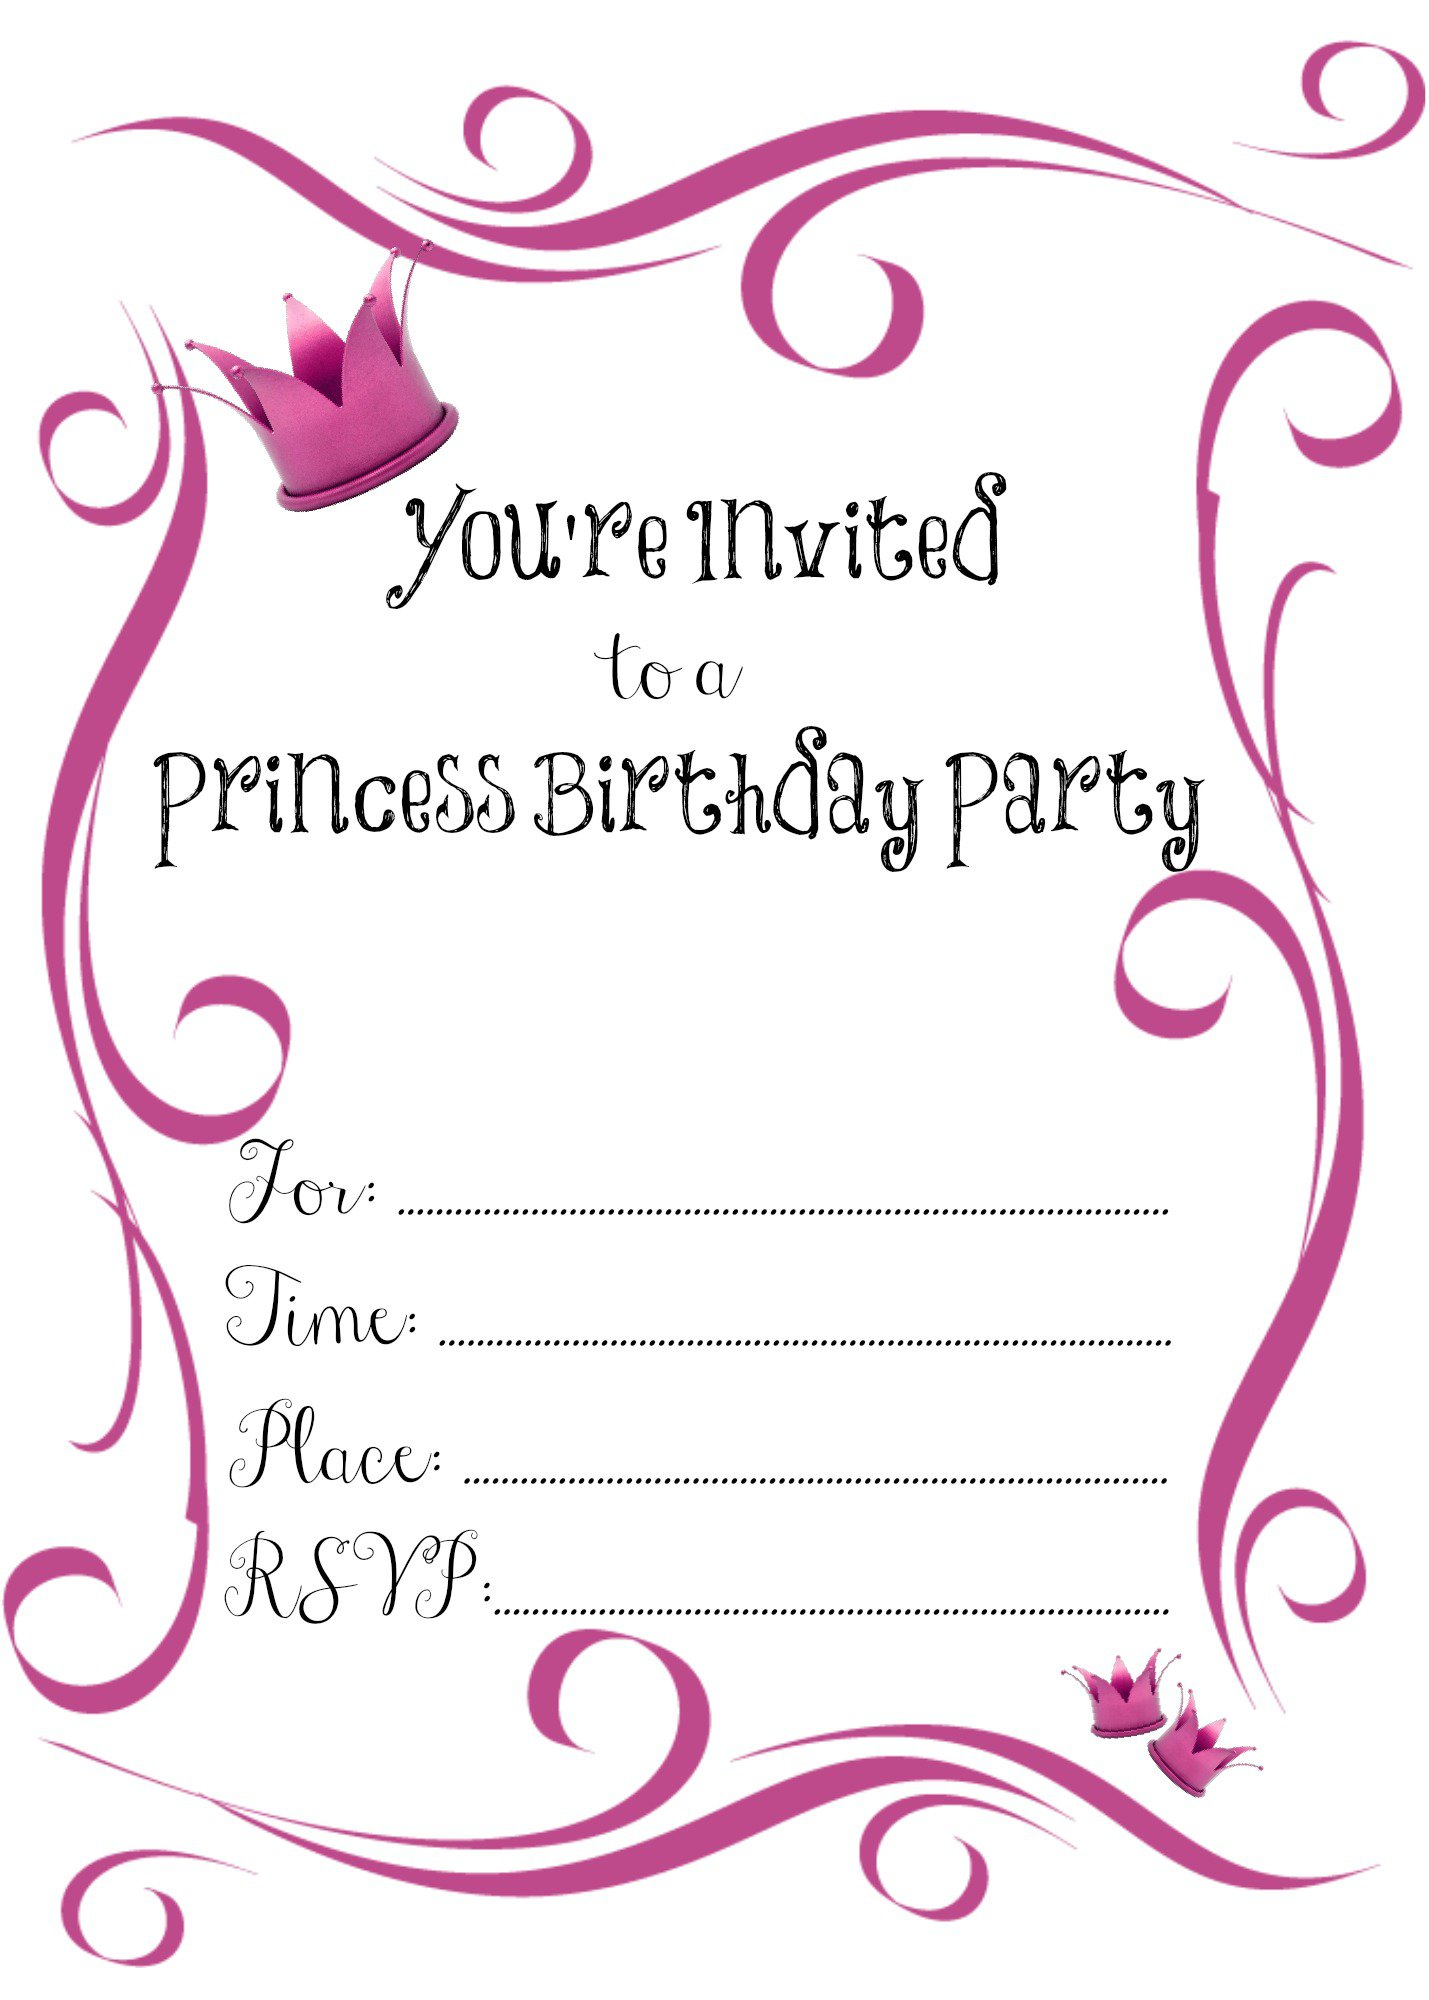 birthday invitation card sample printable ; Birthday-Invitations-For-Adults-to-inspire-you-how-to-create-the-birthday-Invitation-with-the-best-way-6